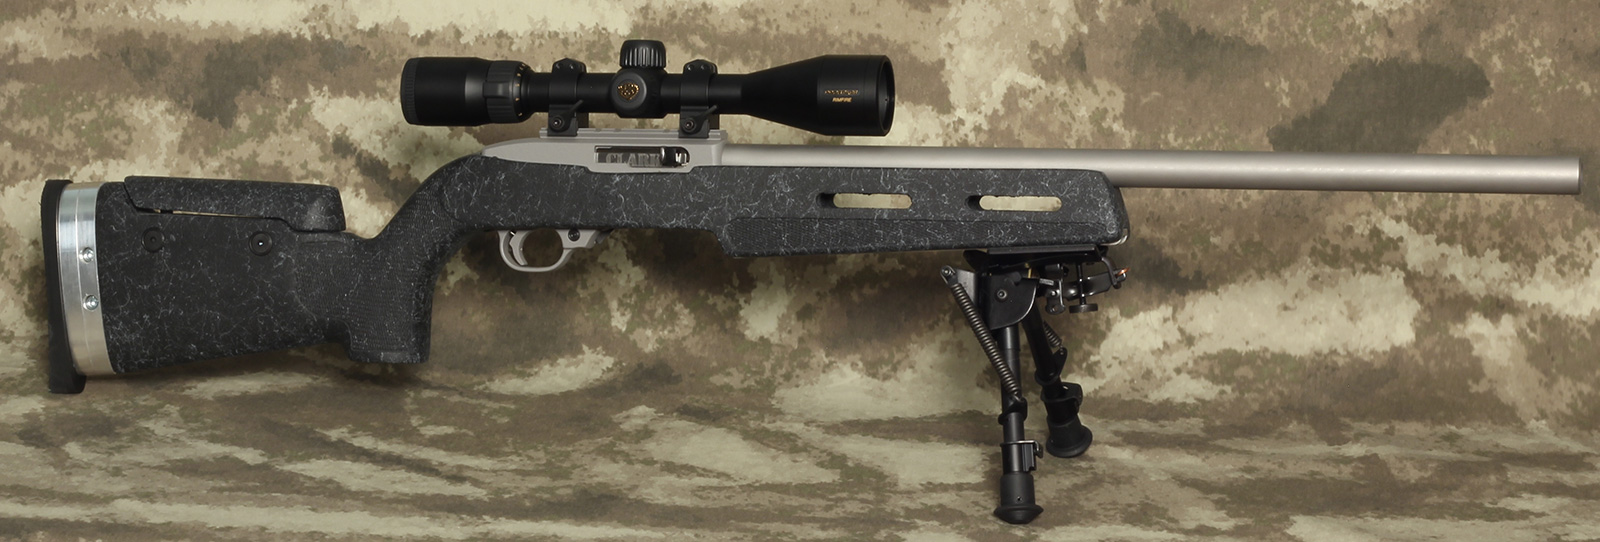 Clark Custom Guns Ruger 10 22